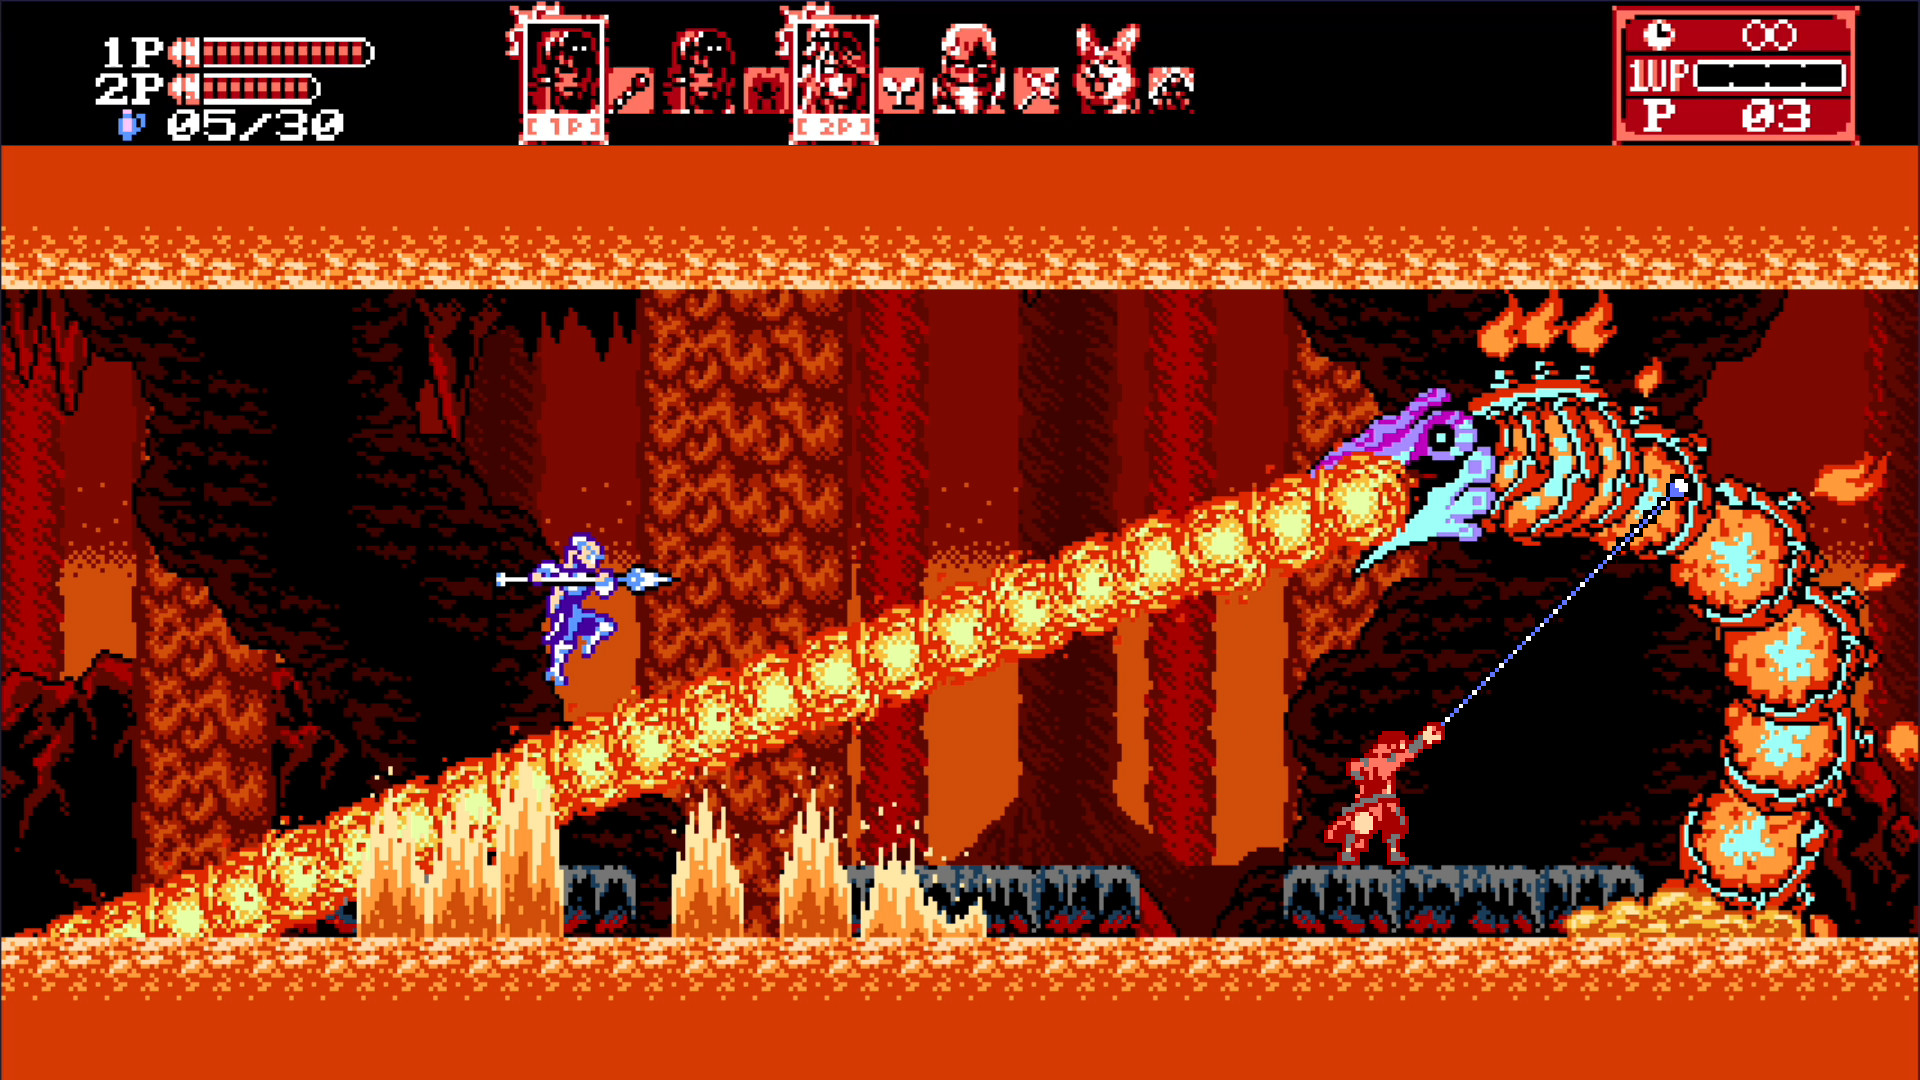 Bloodstained-Curse-of-the-Moon-2-1.3.1-update-adds-Legends-difficulty-bug-fixes-2.jpg